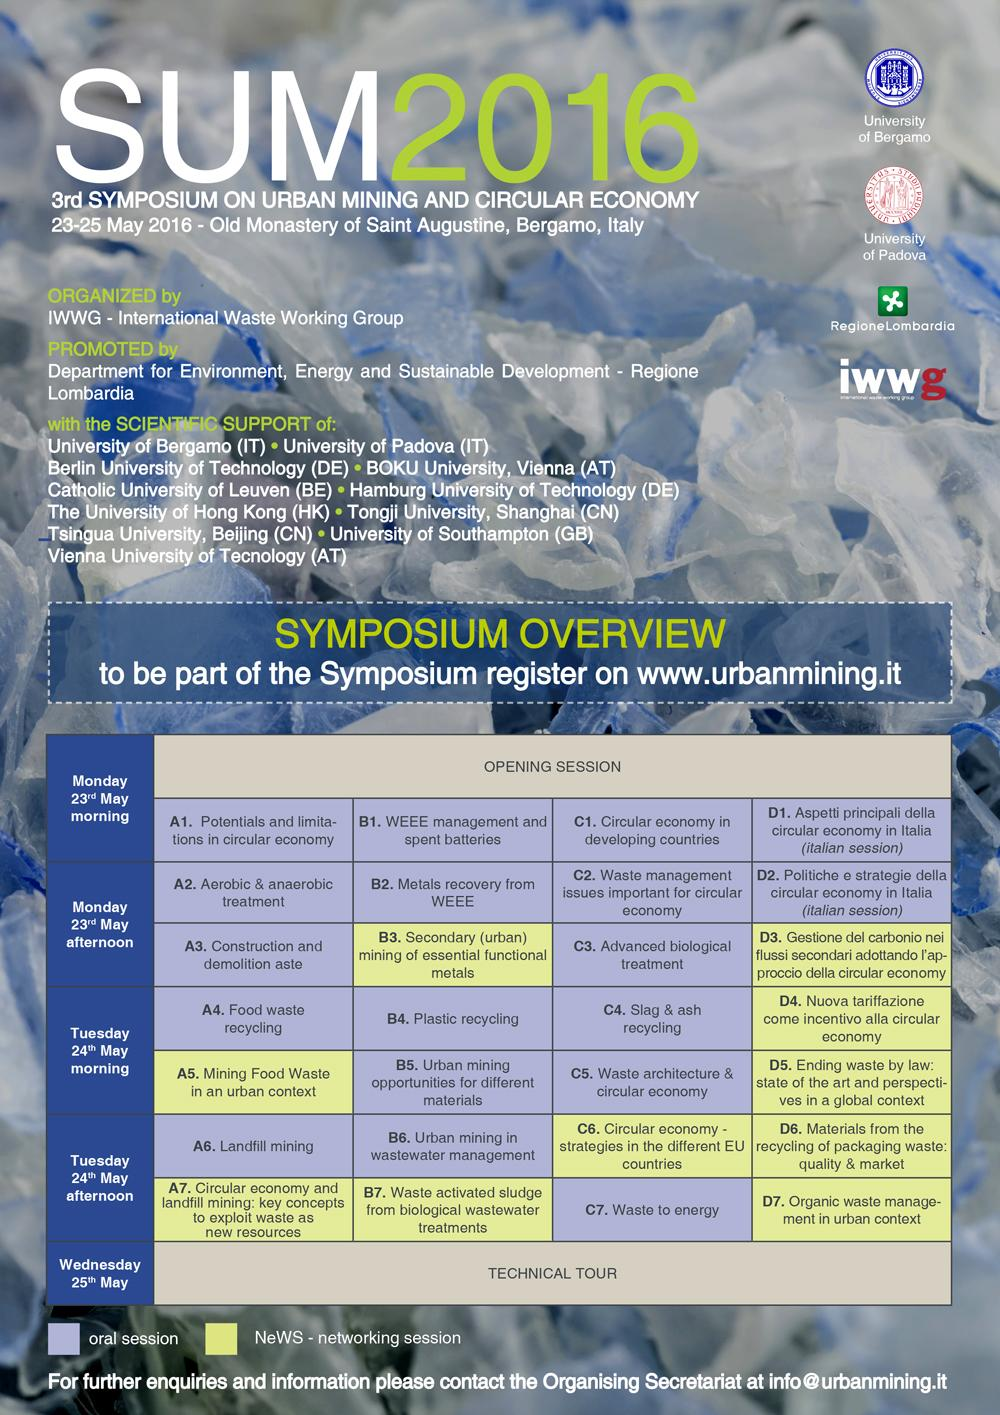 SUM - 2016 - 3rd Symposium on Urman Mining and Circular Economy